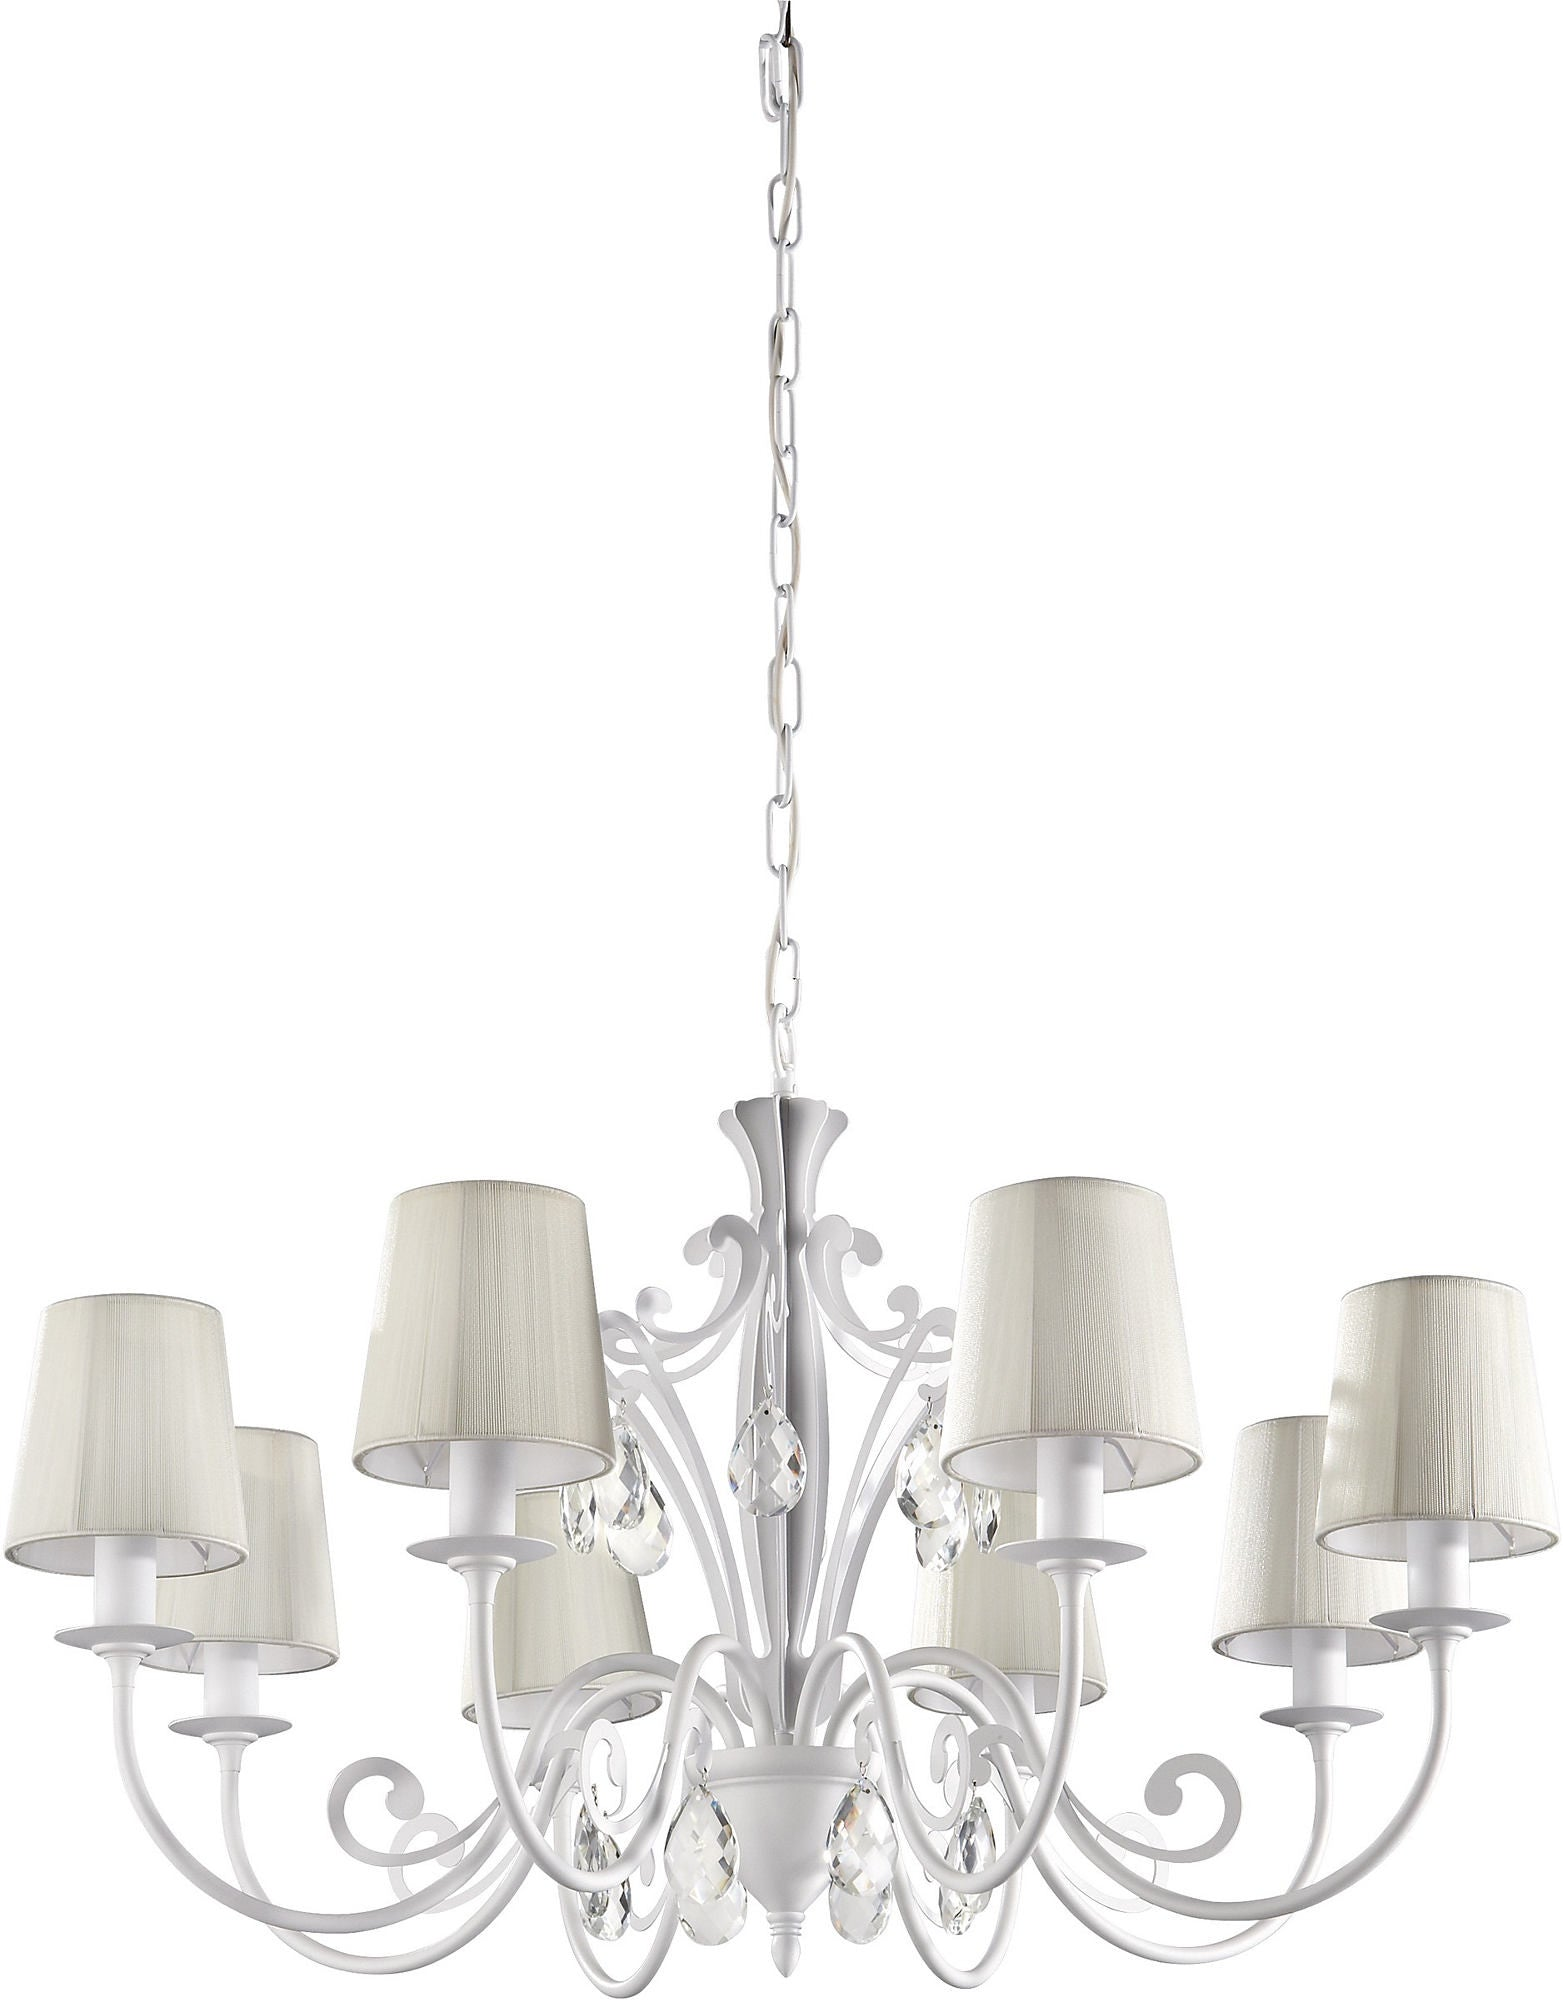 Philips Roomstylers Crystal Chandelier (Suspension Light)